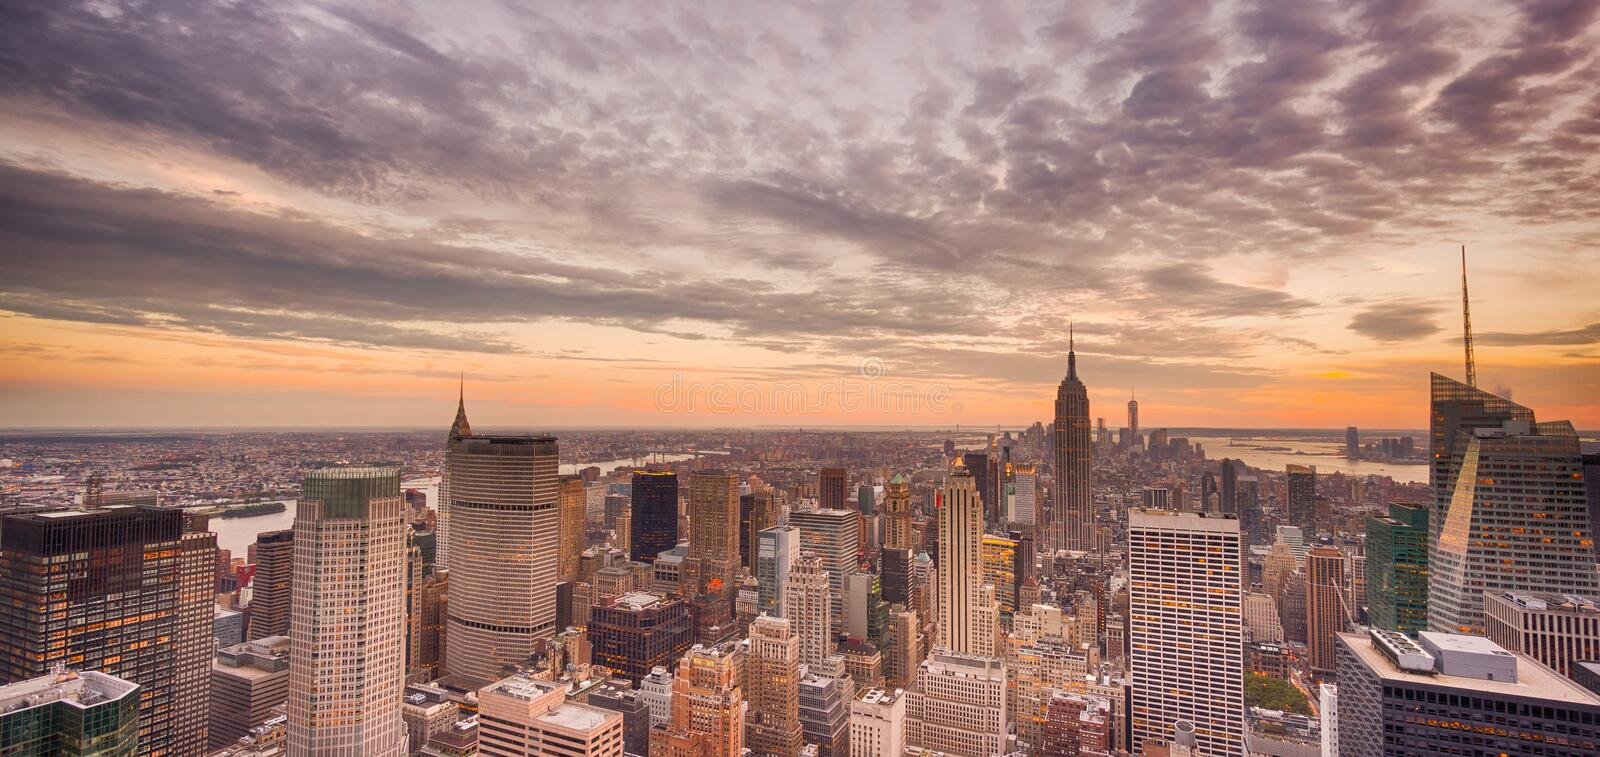 New York City at sunset stock images